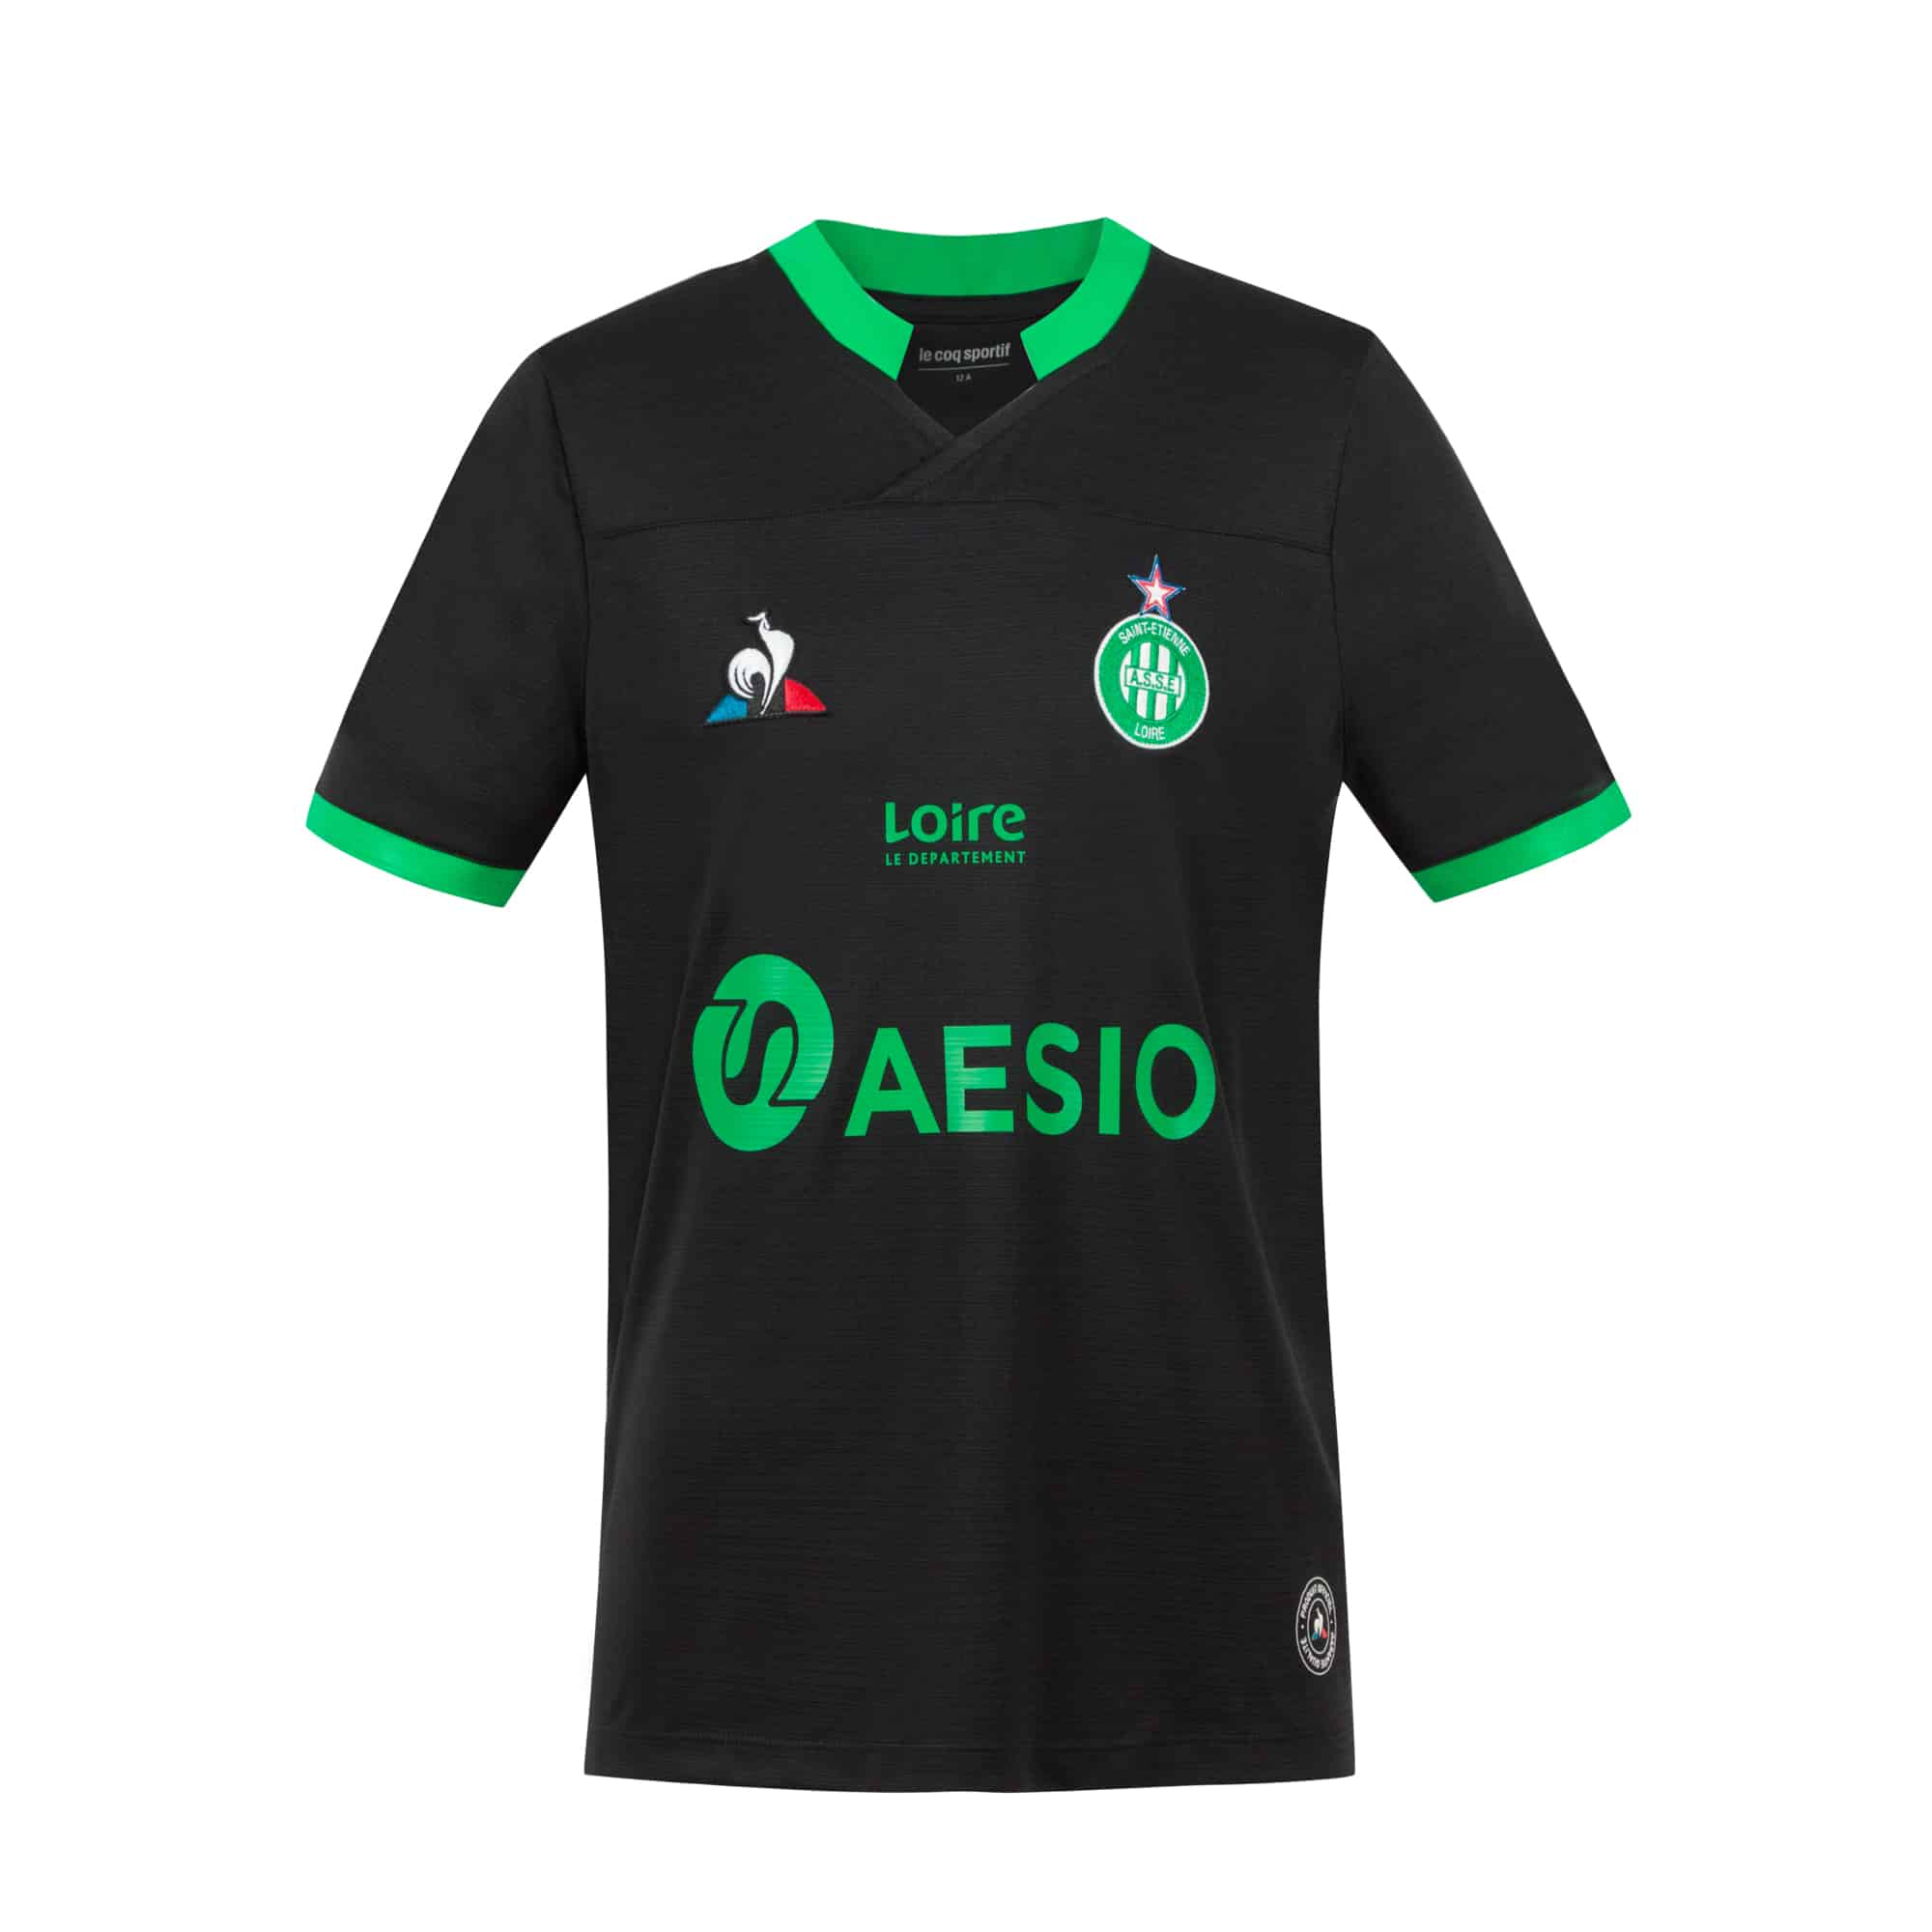 https://www.footpack.fr/wp-content/uploads/2020/07/maillot-third-as-saint-etienne-2020-2021-le-coq-sportif.jpg